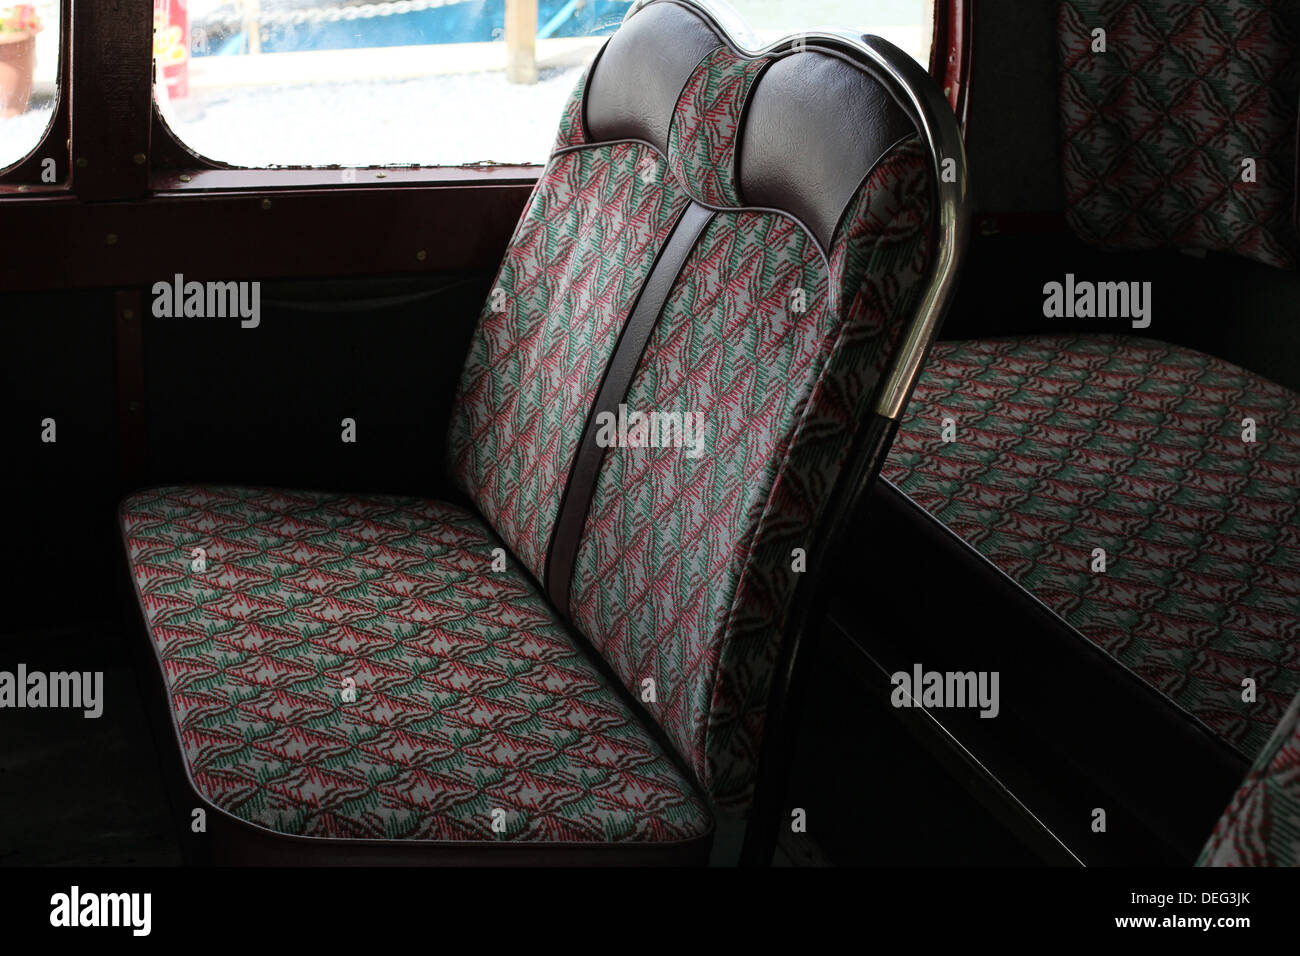 coach seats,upholstery,leather,barnaby,Leyland bus on the way to Greenway house, vintage, Leyland, Tiger, Bus, classic, restored - Stock Image